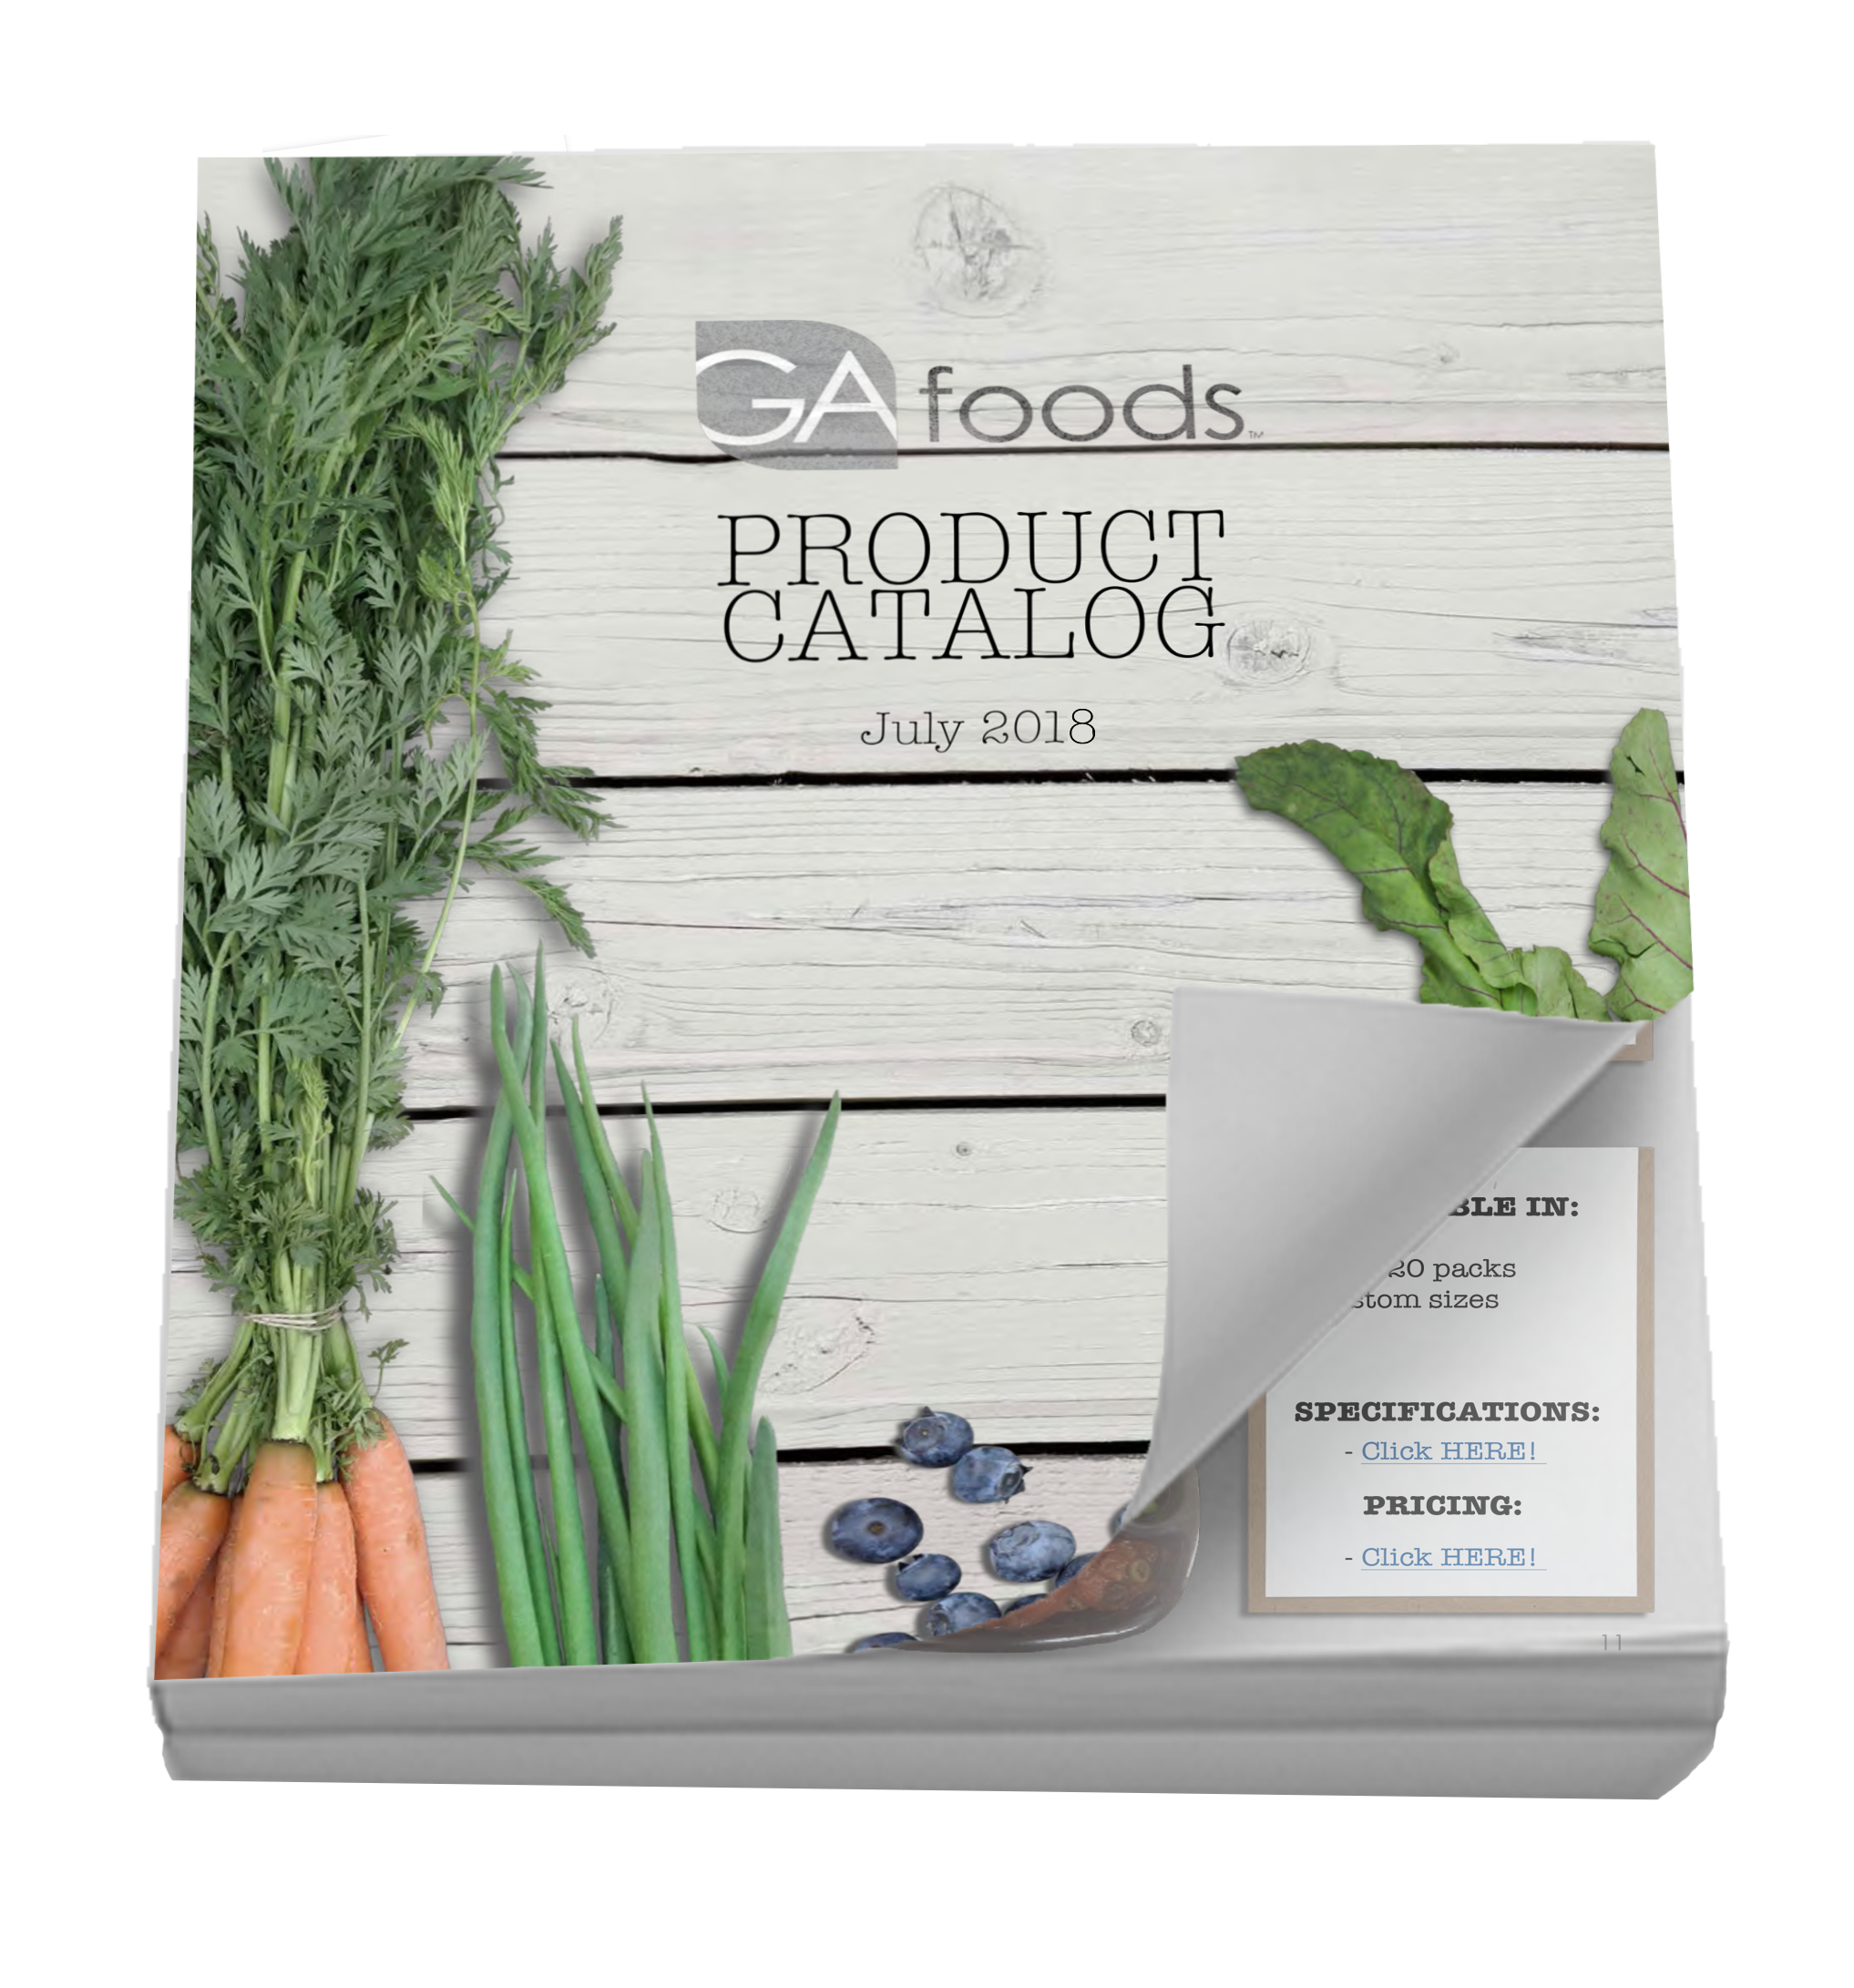 Product Catalog in 3D_2018cycle2